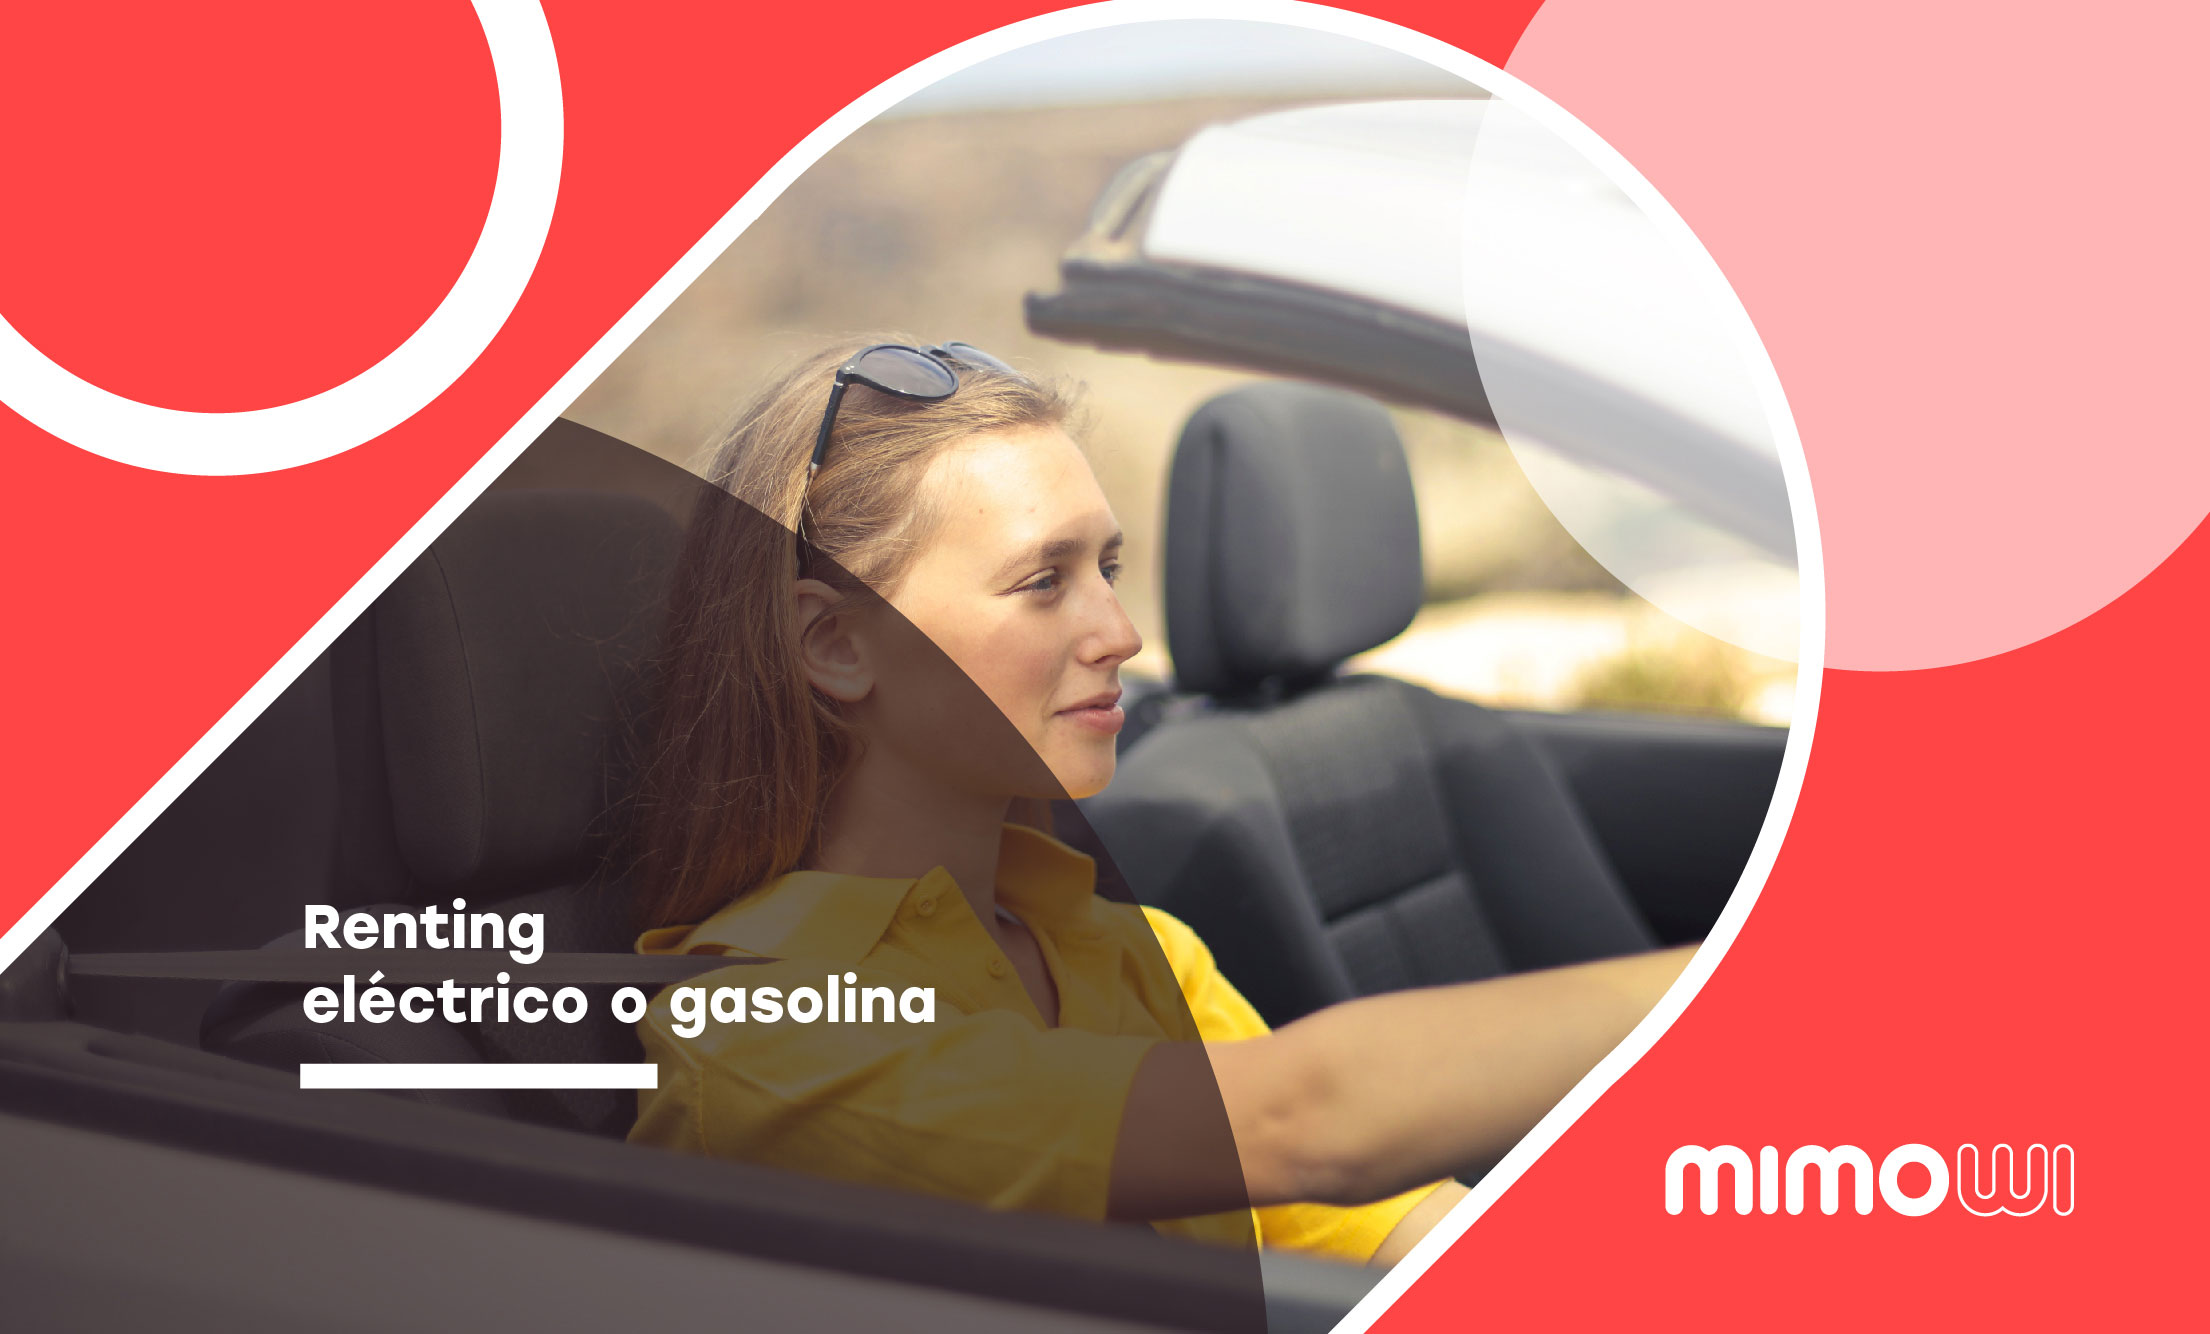 renting-electrico-gasolina